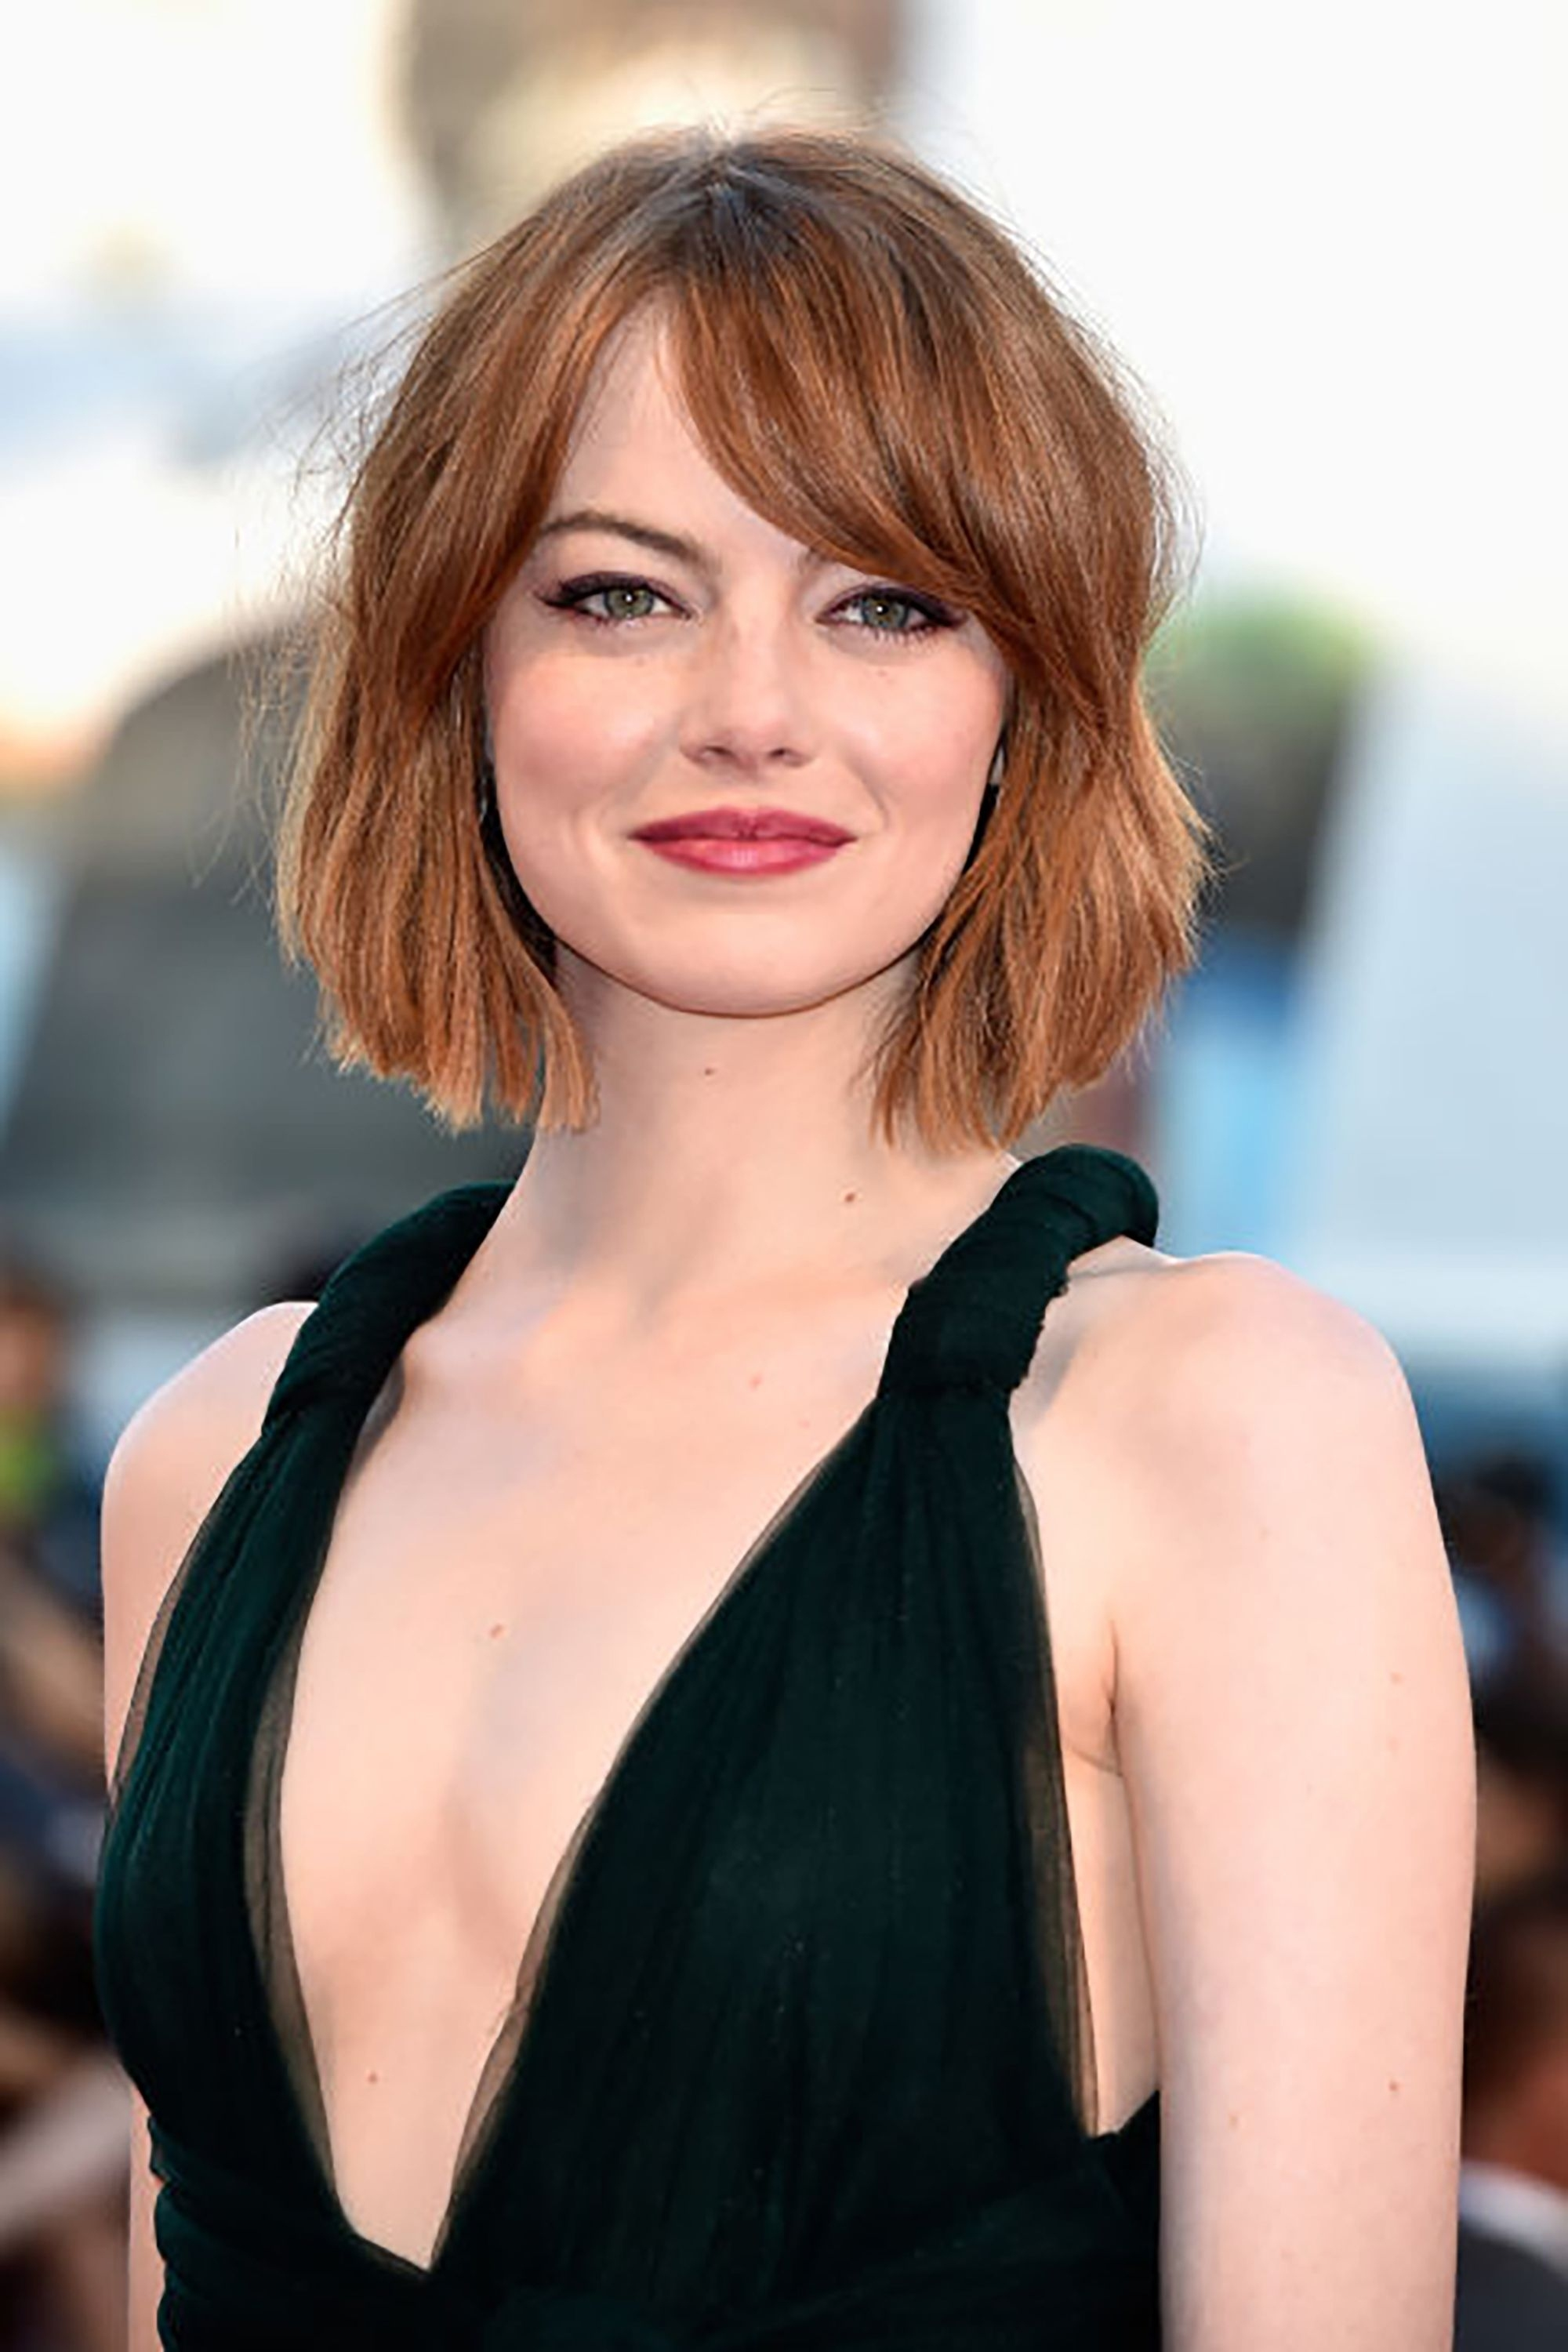 20 Best Hairstyles For Round Faces - Easy Haircut Ideas For Round inside New Hair Cut For Round Face